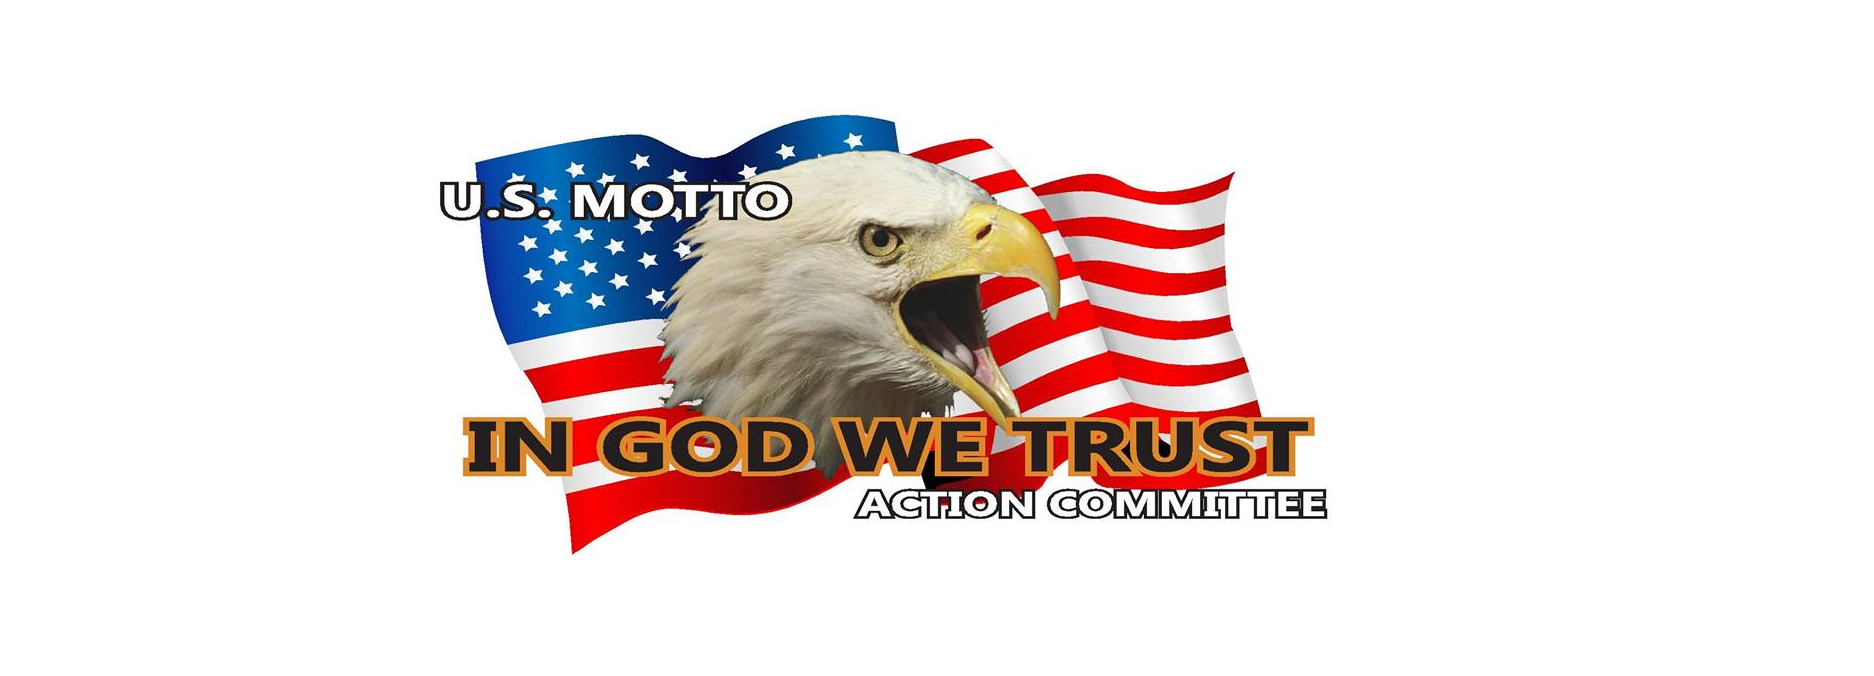 "U.S. Motto ""In God We Trust"" Action Committee"